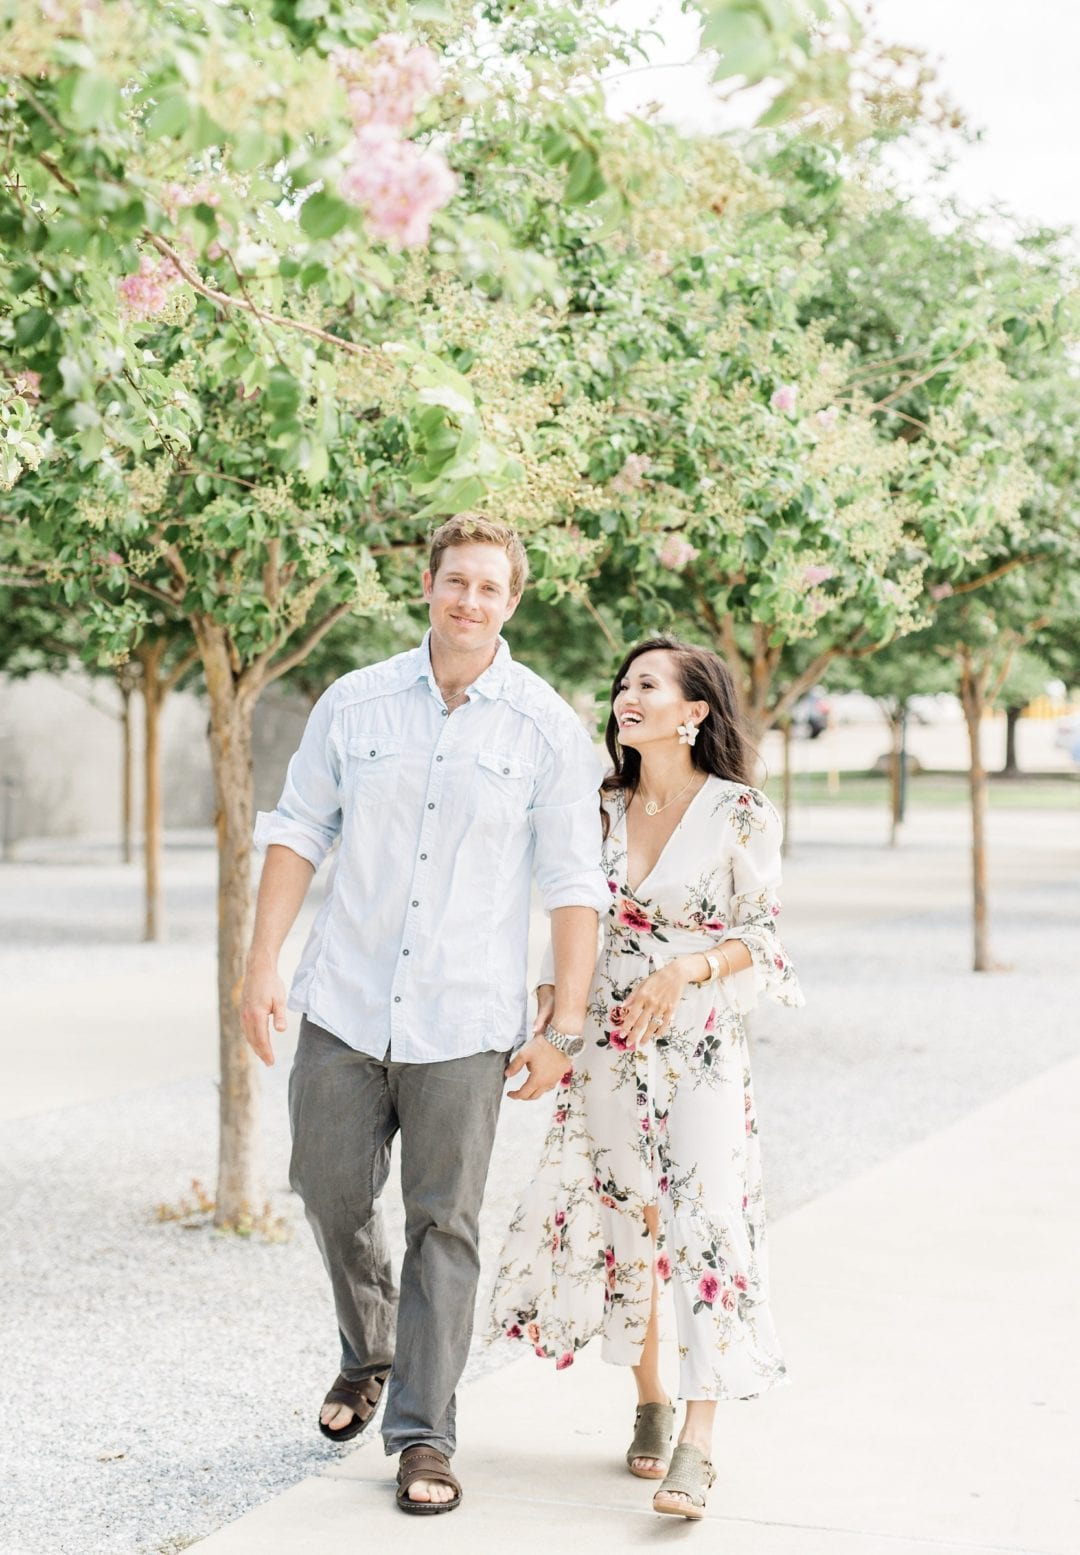 Father's Day, #fathersday, #lovestory, SUMMER STYLE, wrap dress, marriage, #rockport, #zappos